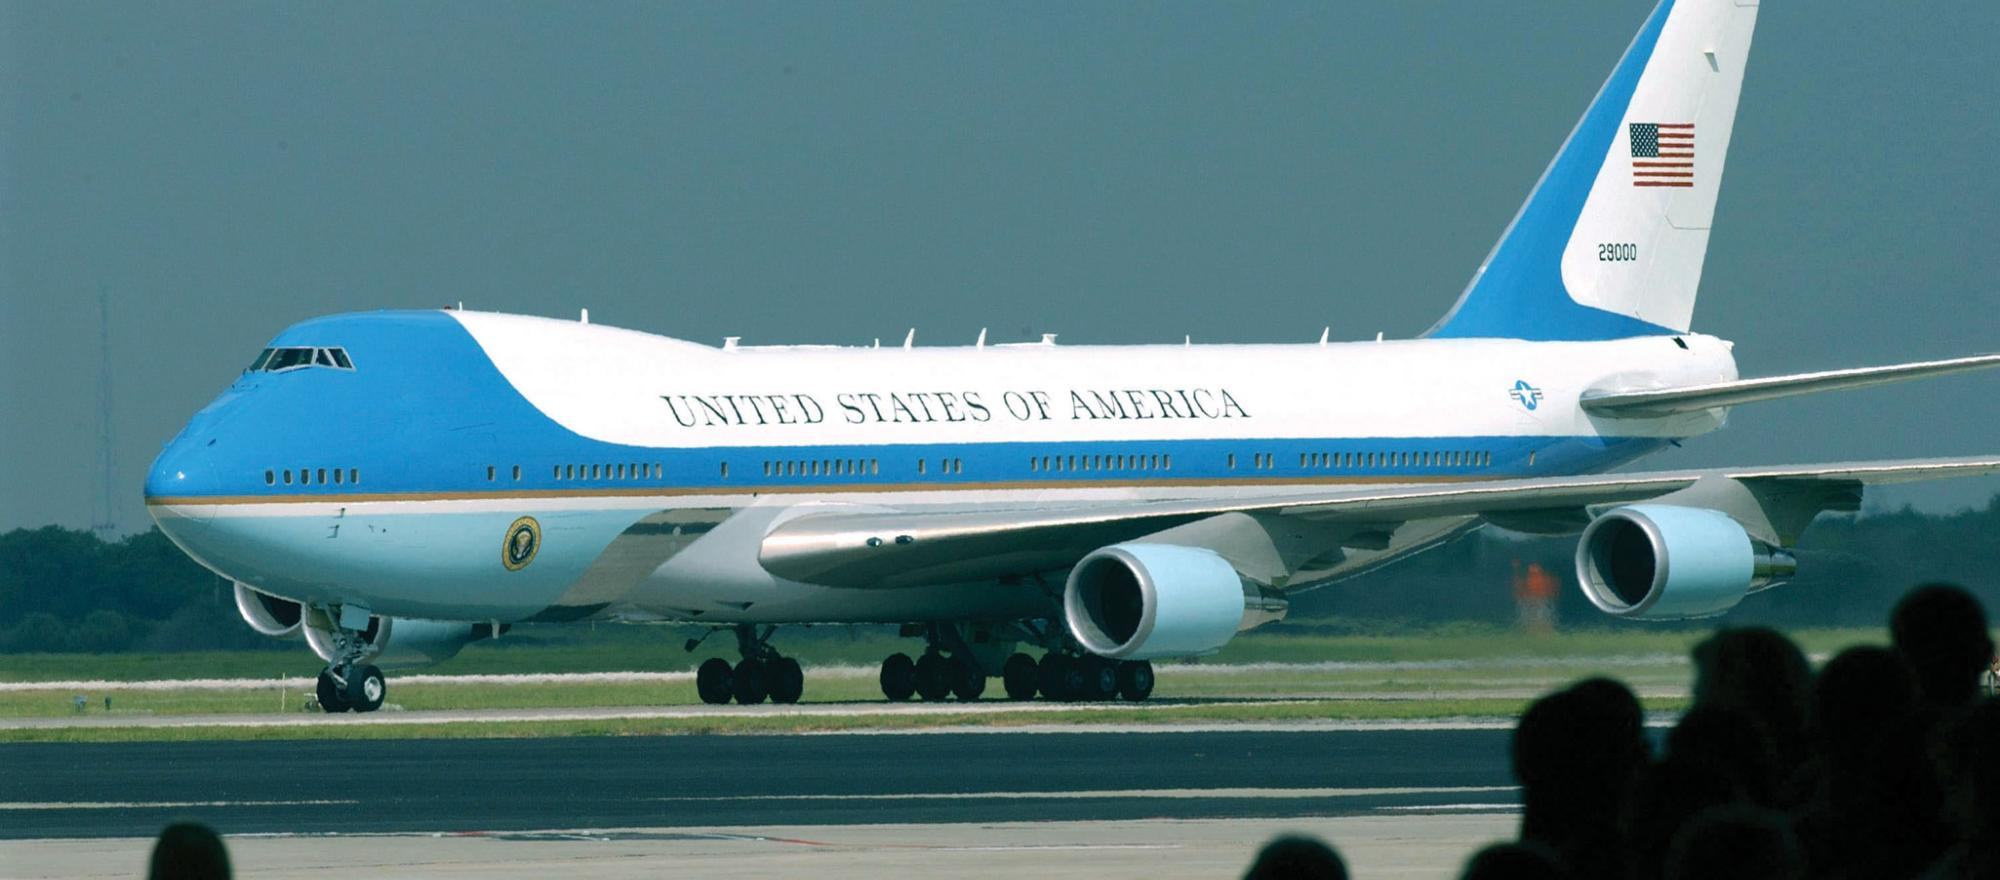 Airforce One